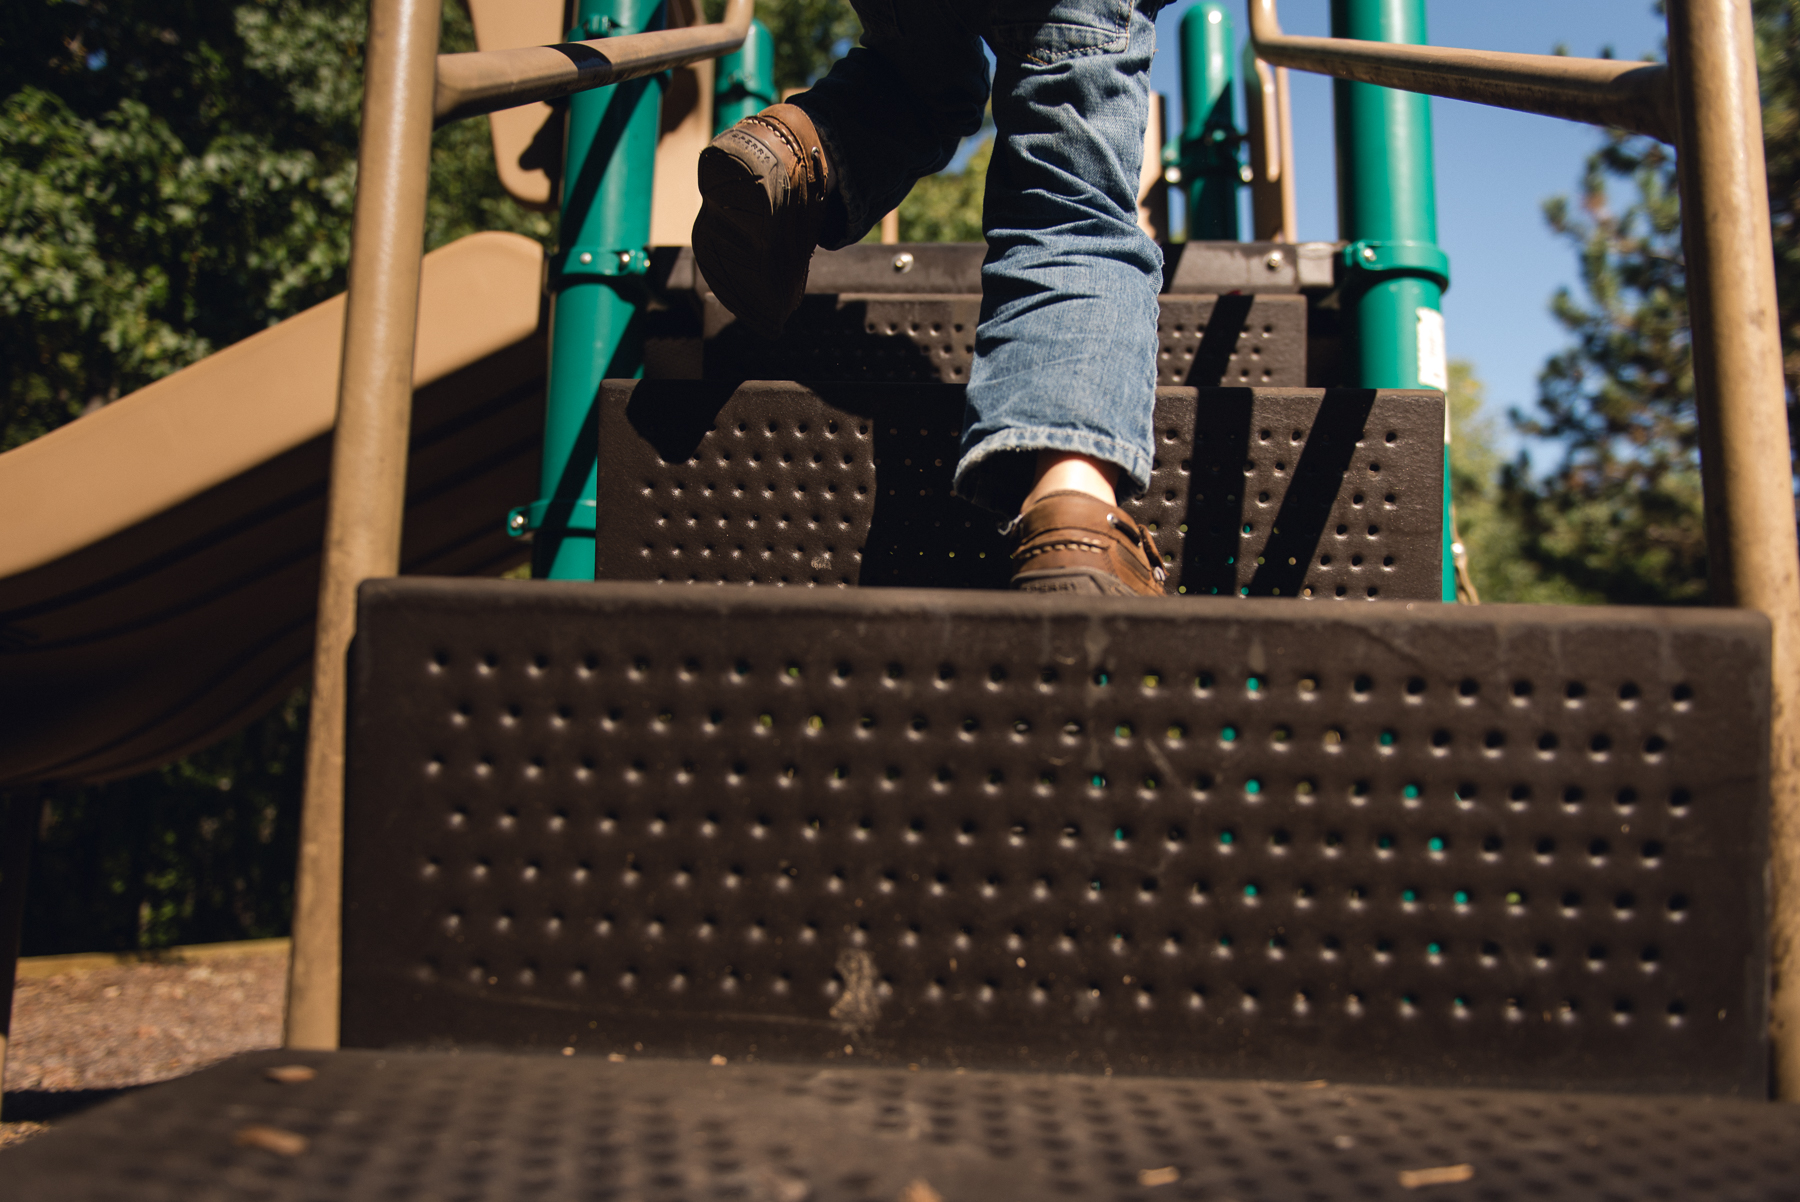 Photo of child climbing stairs in full sun on a playground by megan cieloha